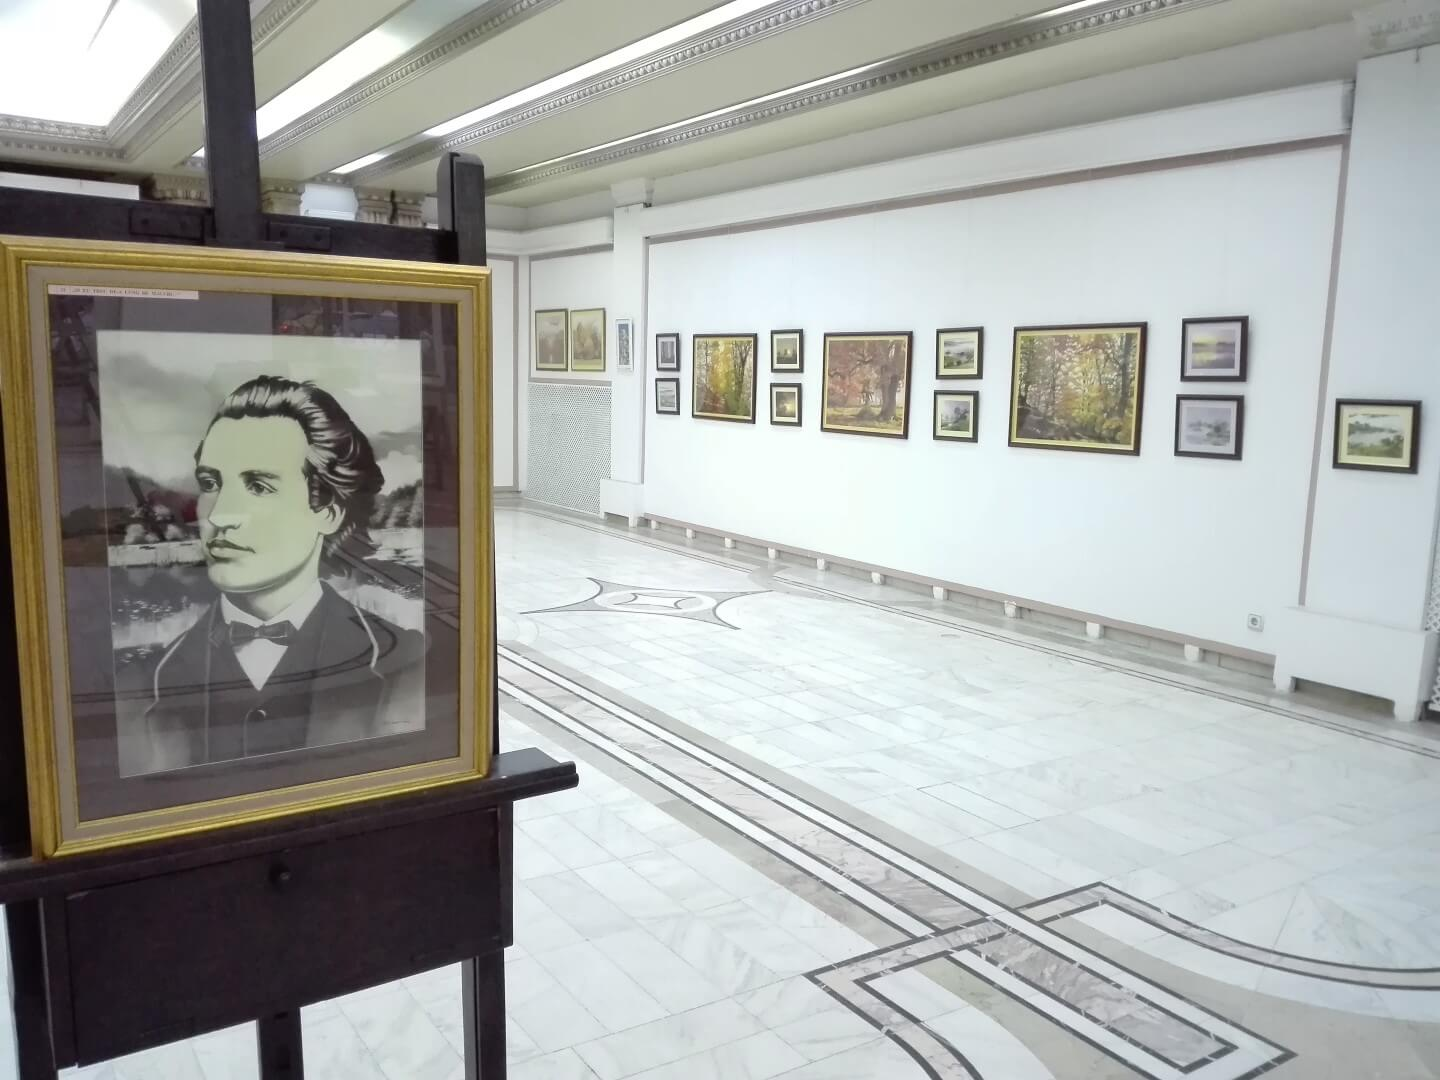 expozitie de pictura bucuresti 2018 pictor adrian stoenica tablouri pictate manual